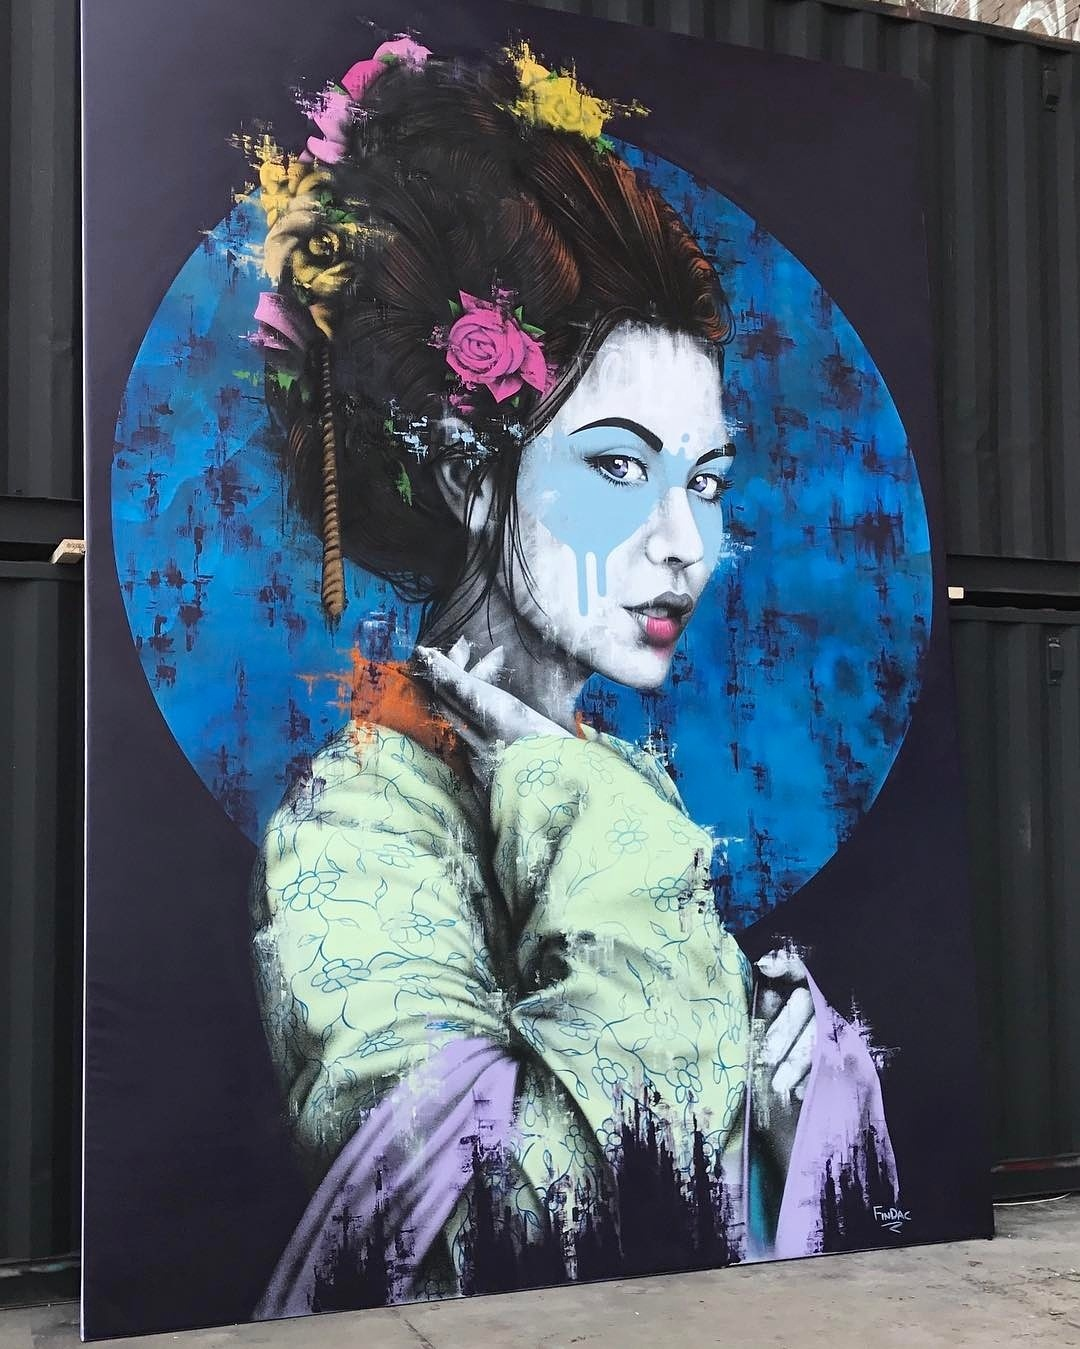 findac - street art - kings spray - amsterdam